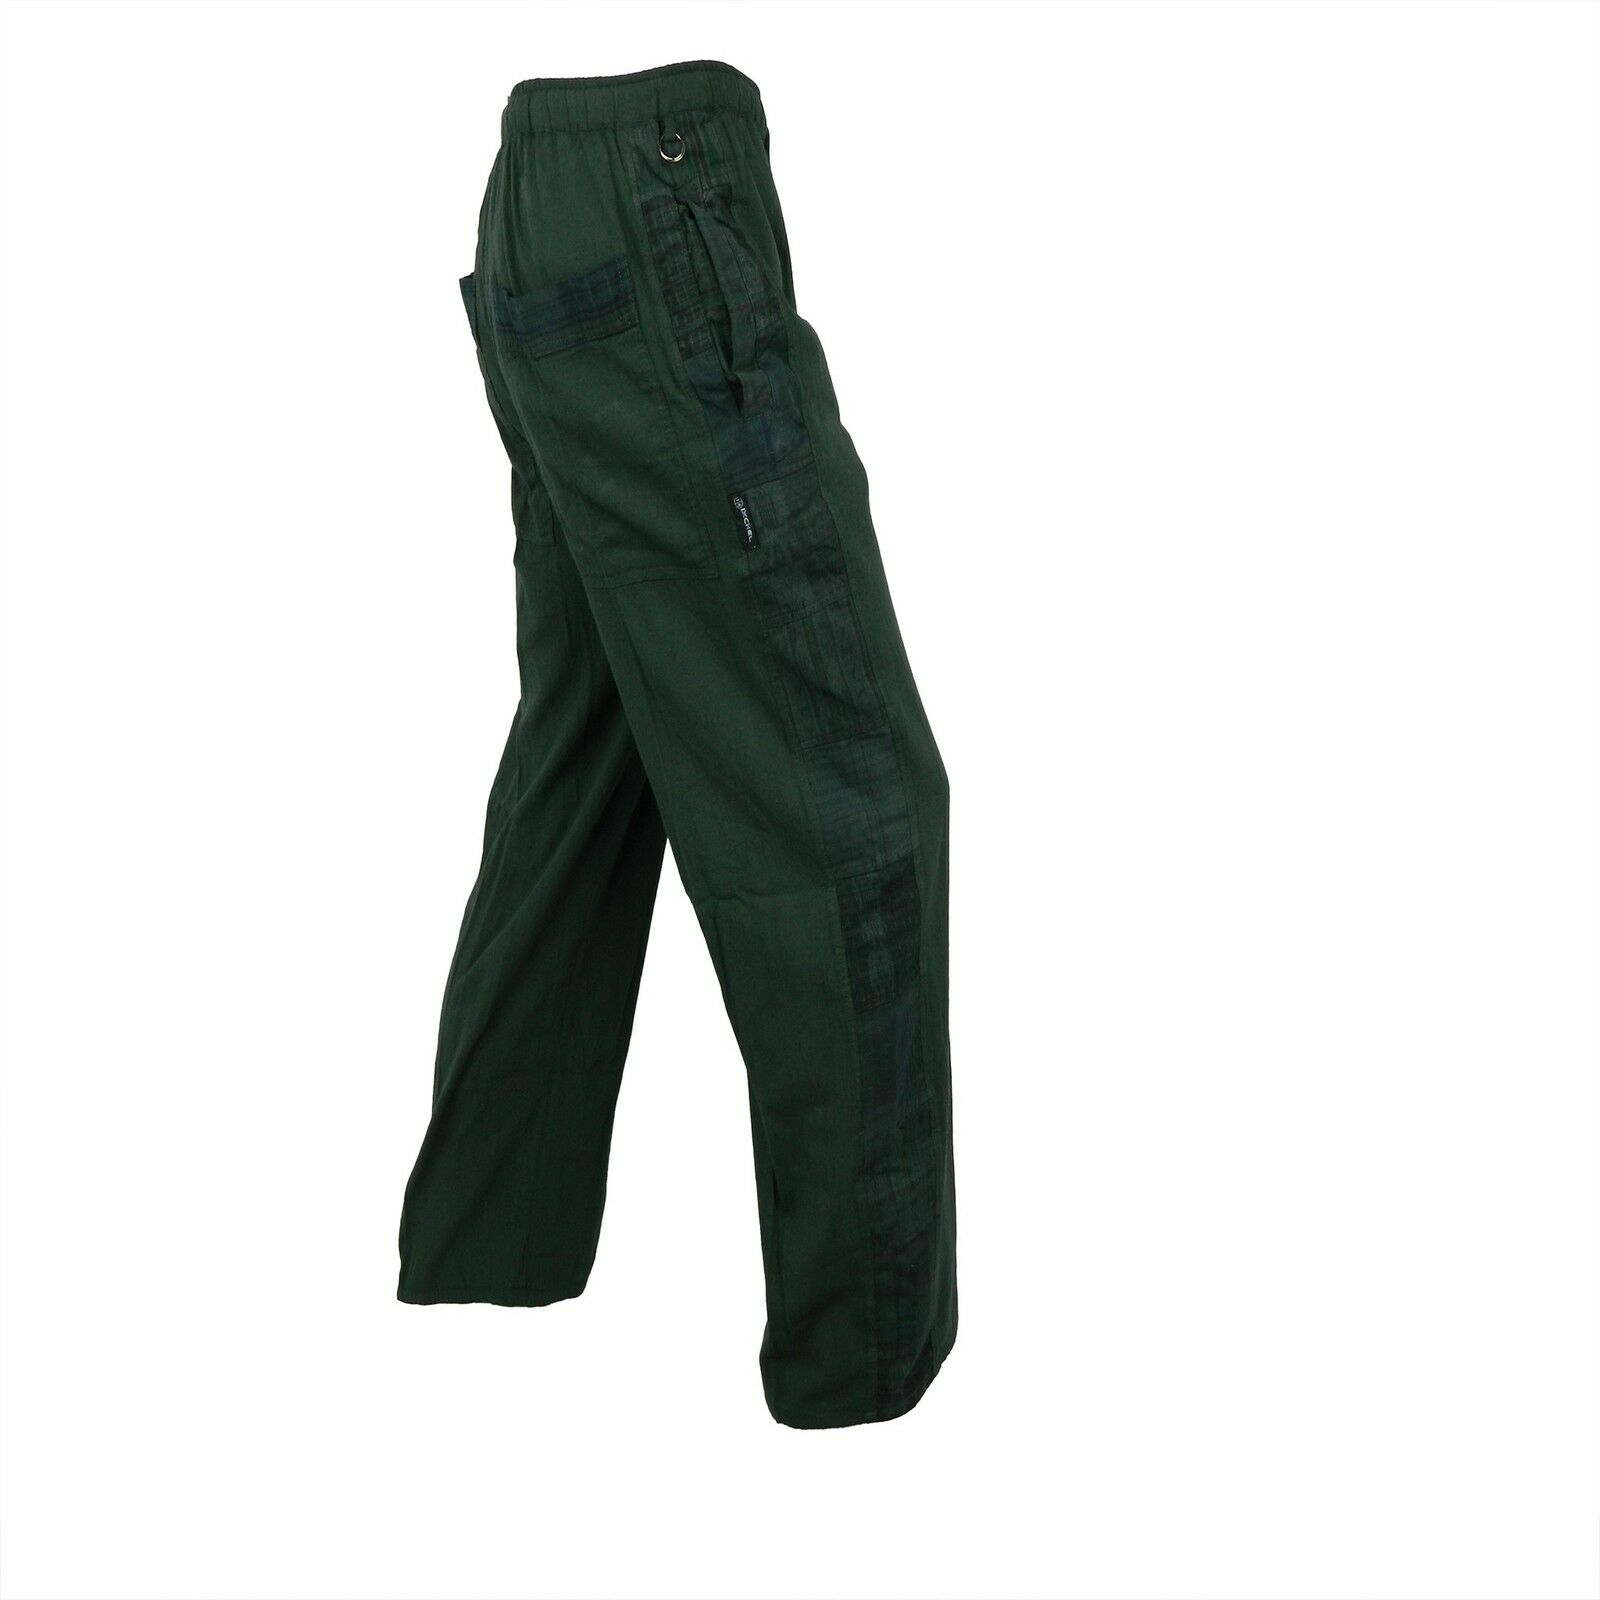 Garment dyed Patchwork Pants with hand woven patches